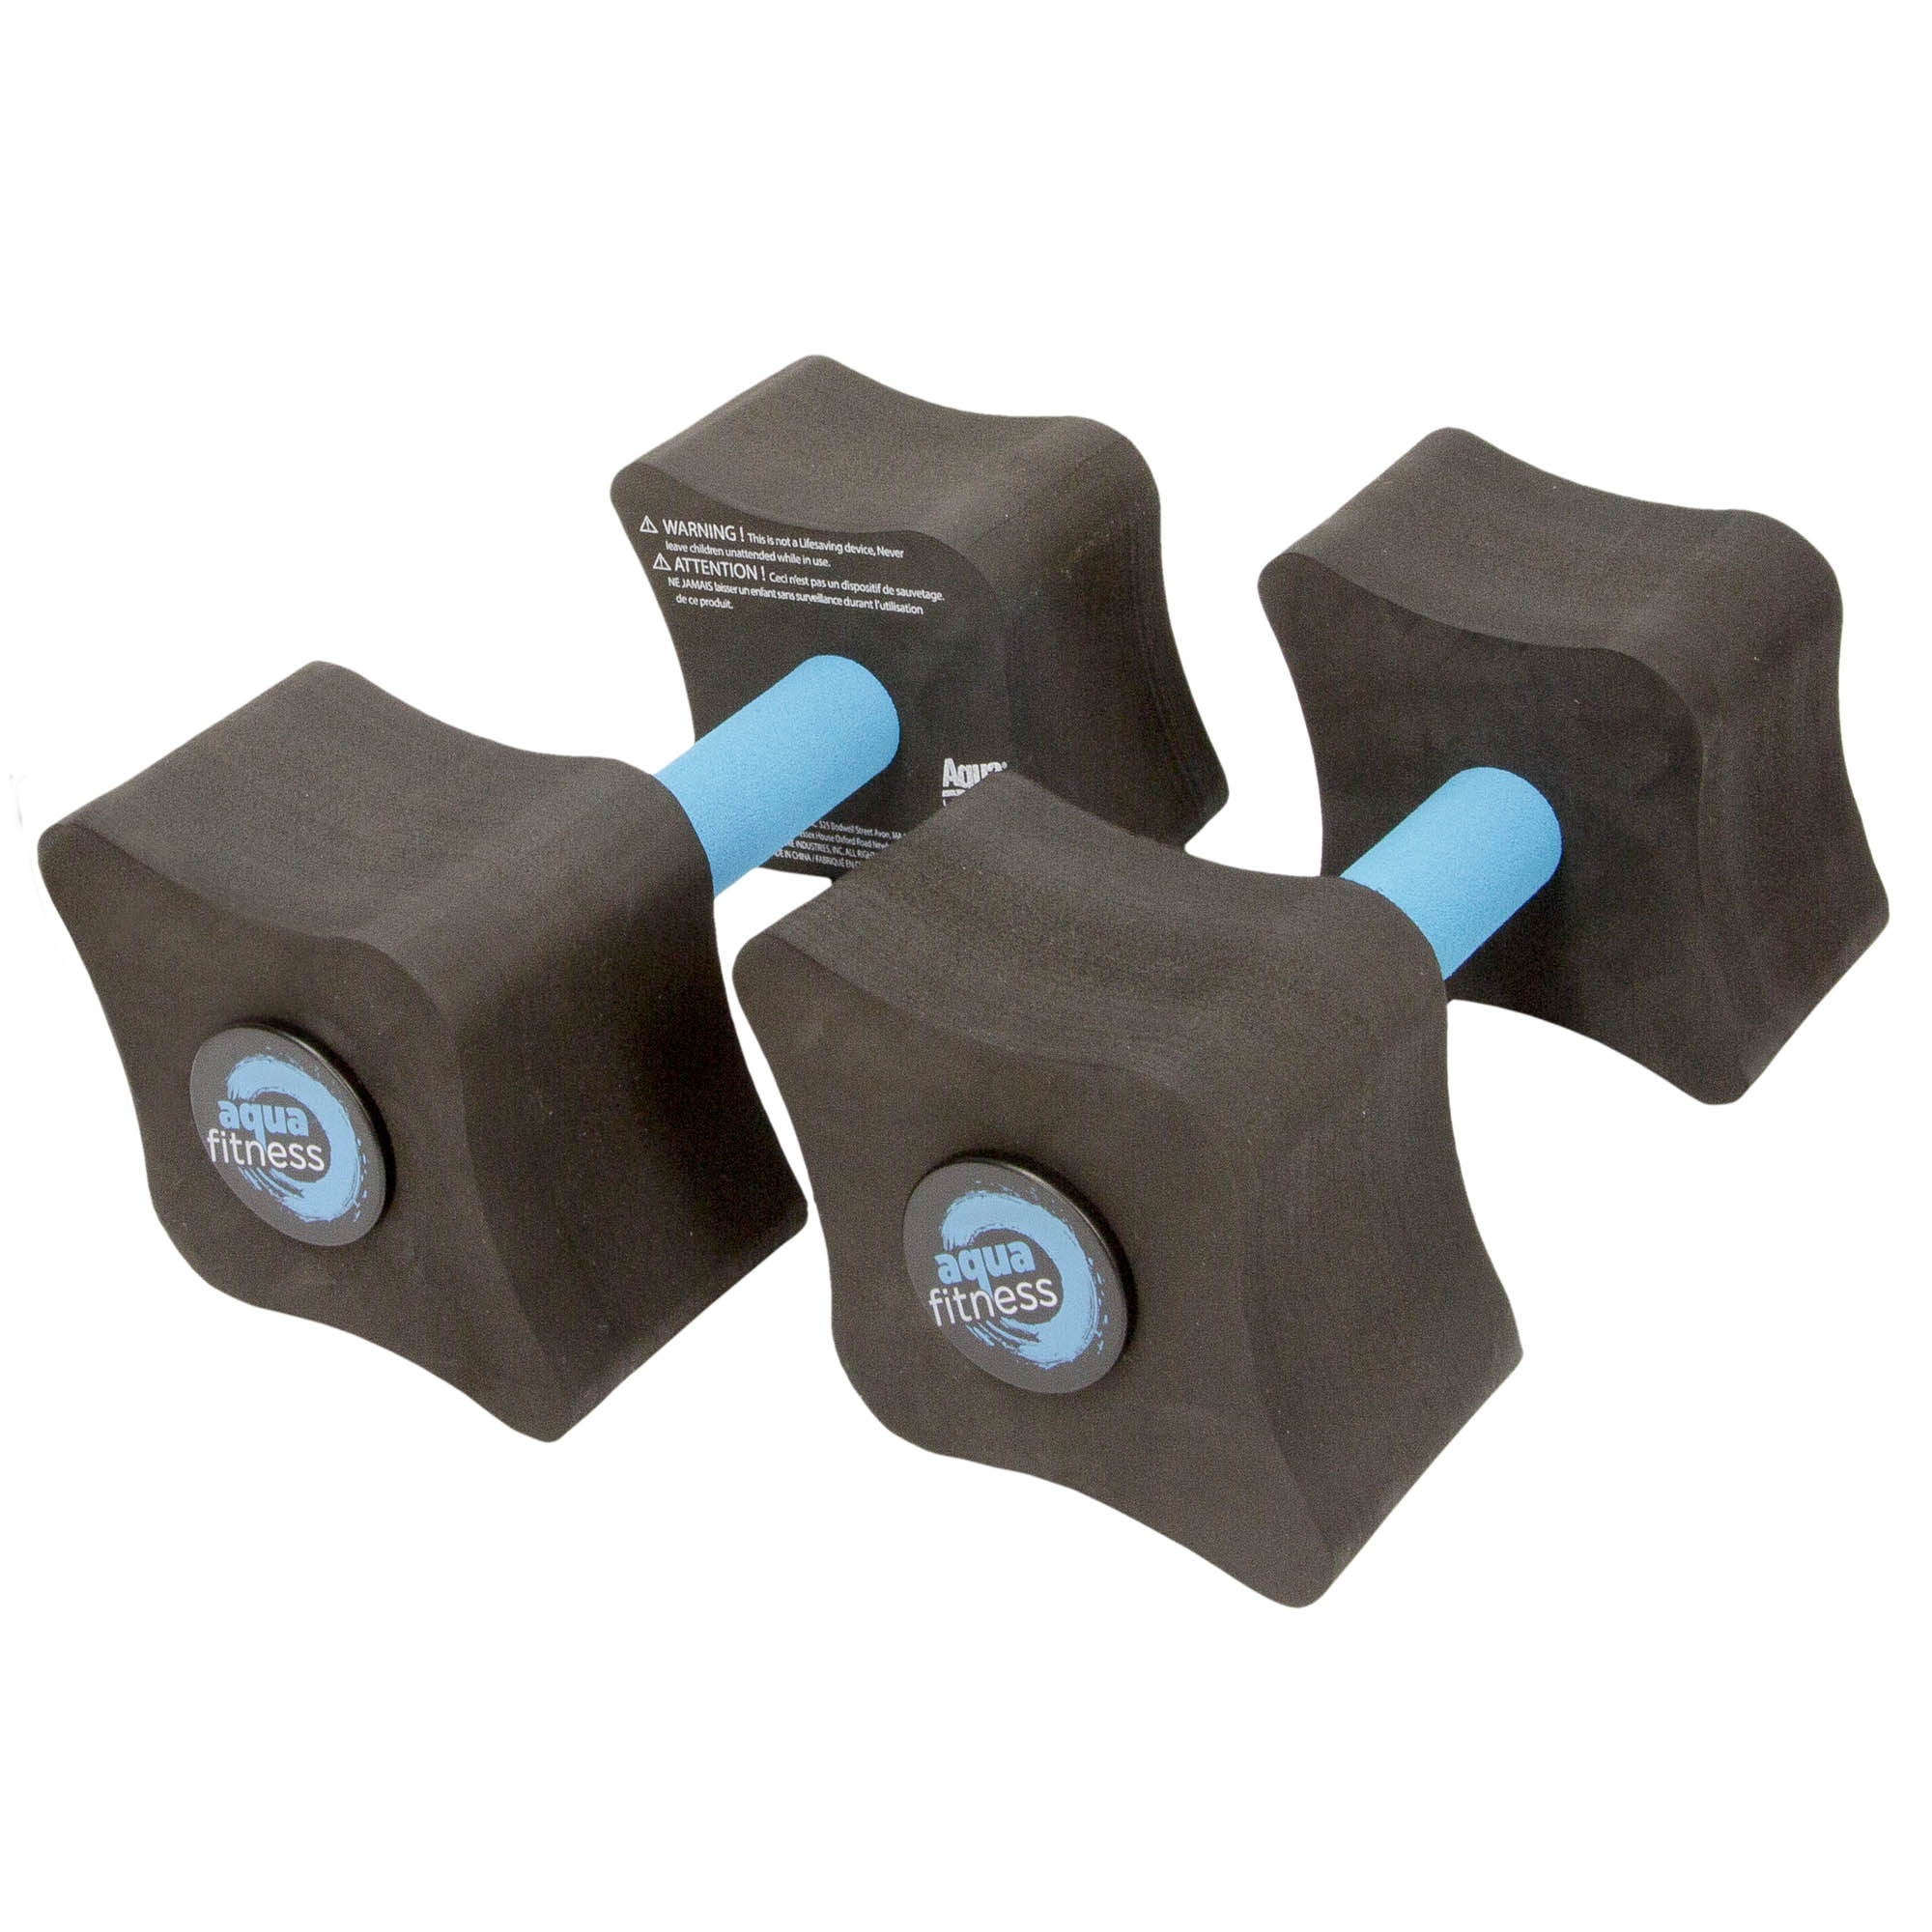 AquaFitness Aquatic Fitness Dumbells